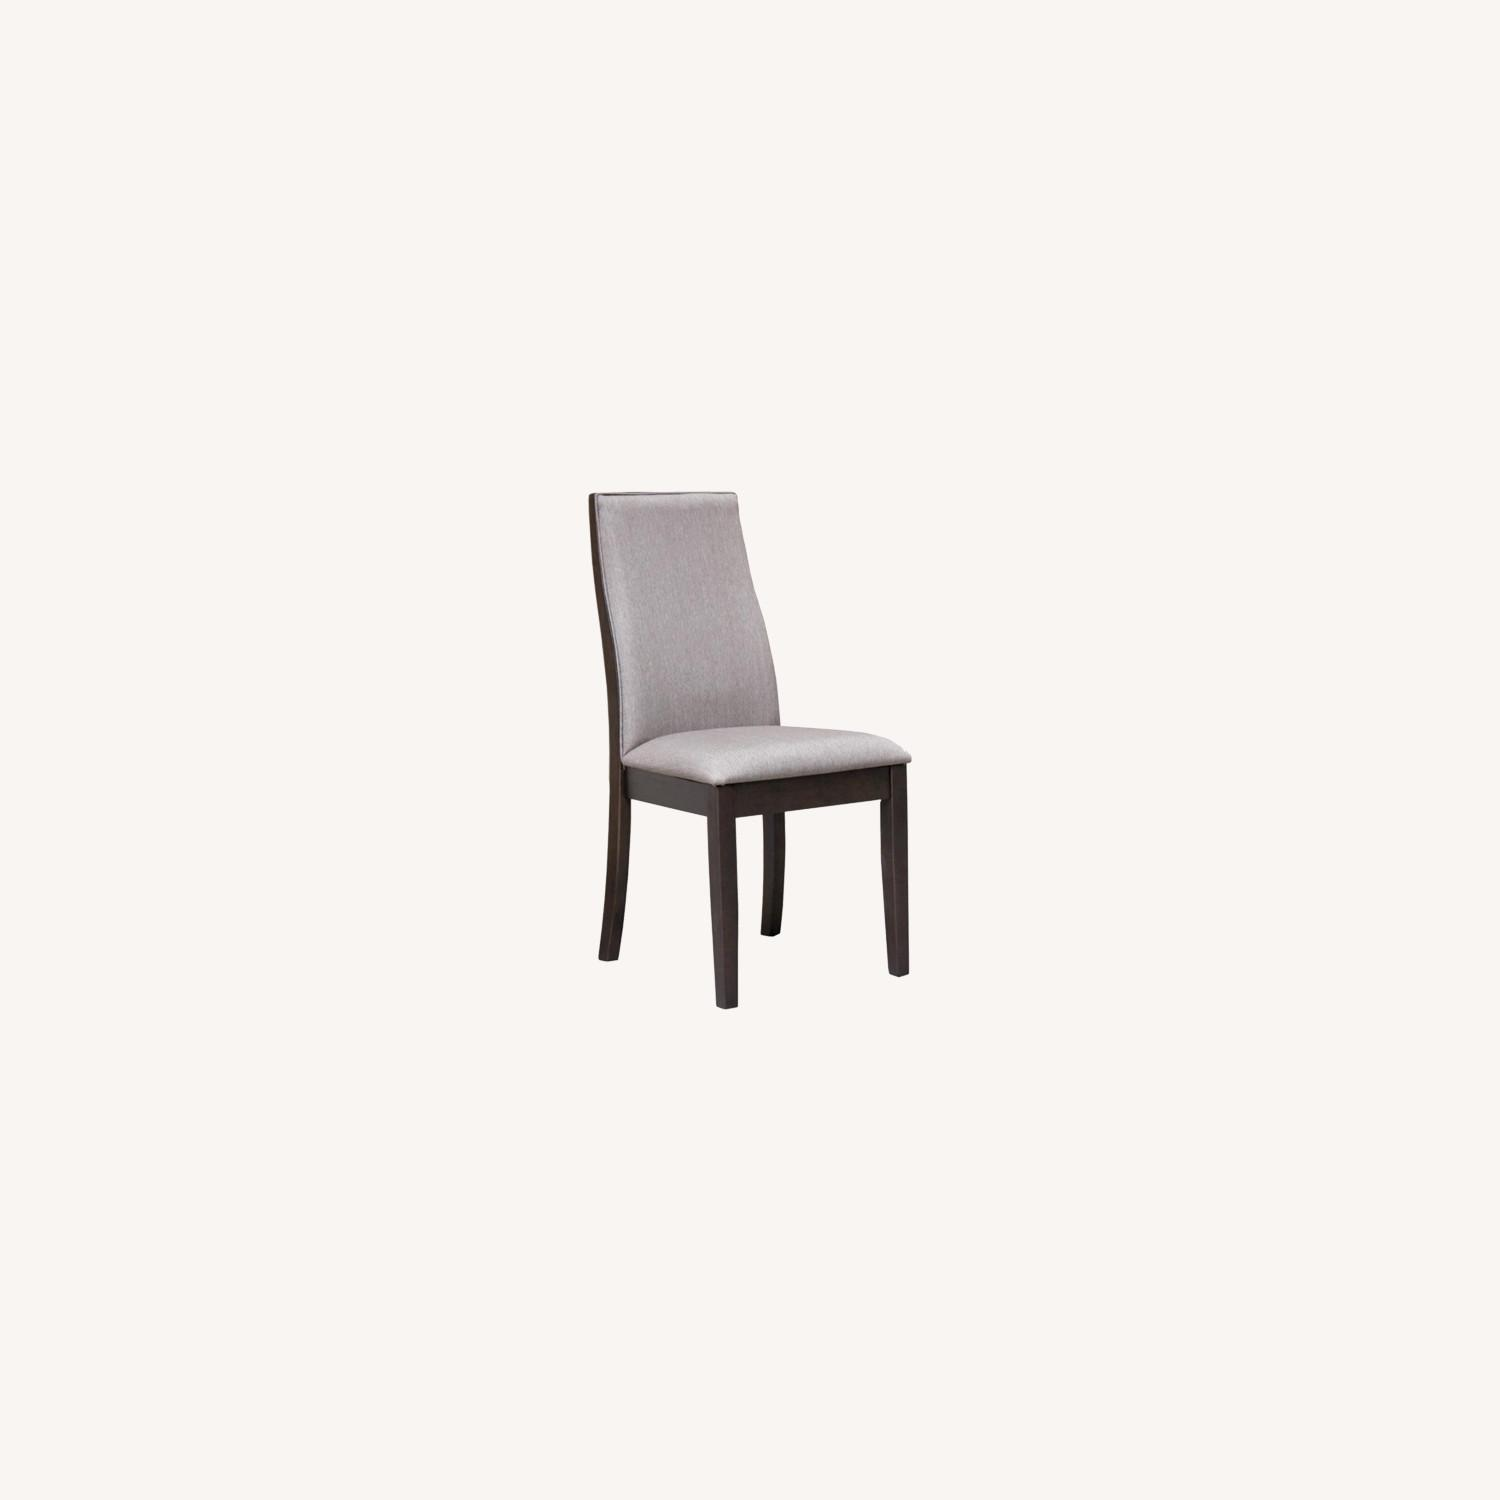 Dining Chair In Grey Fabric & Espresso Wood Finish - image-6